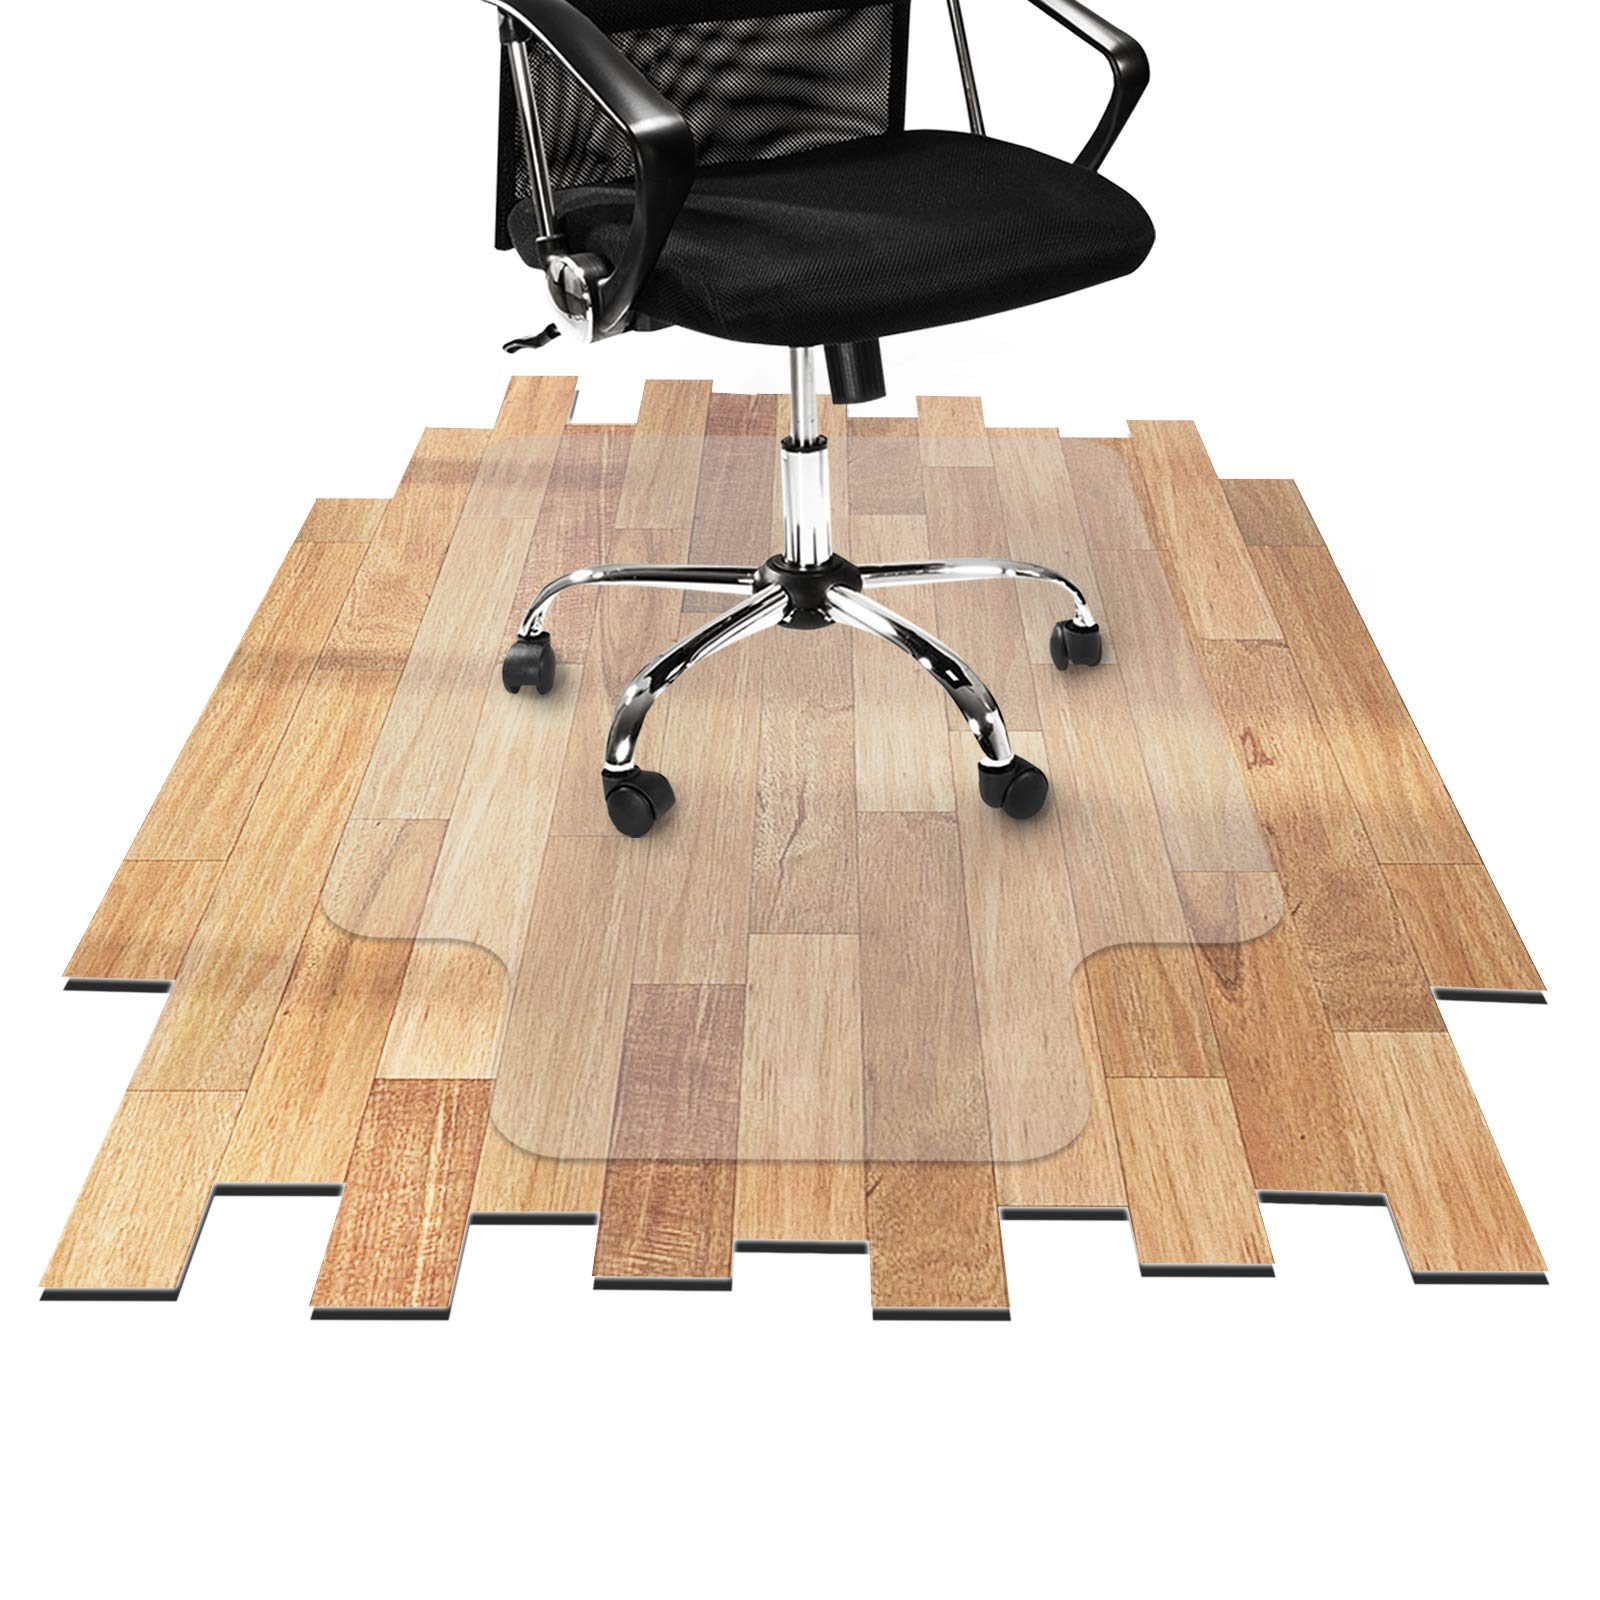 Desk Chair Mat for Hardwood Floor - Hard Floor Protection Mat for Office & Home | Many Sizes Available | Clear - 36'' x 48'' with Lip